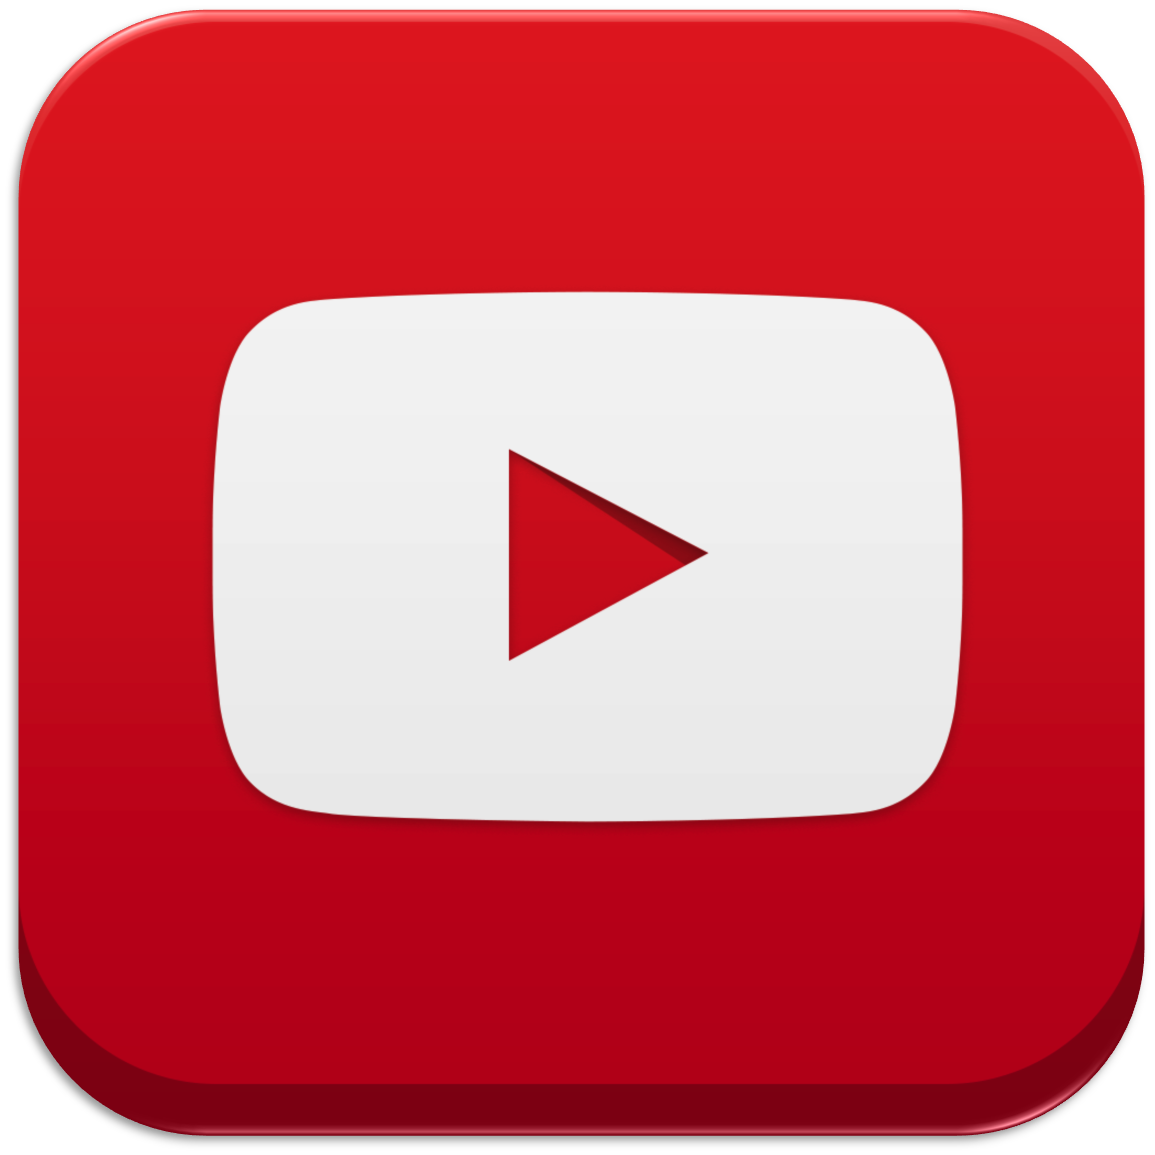 Youtube Subscribe Png image #39365 - Youtube PNG